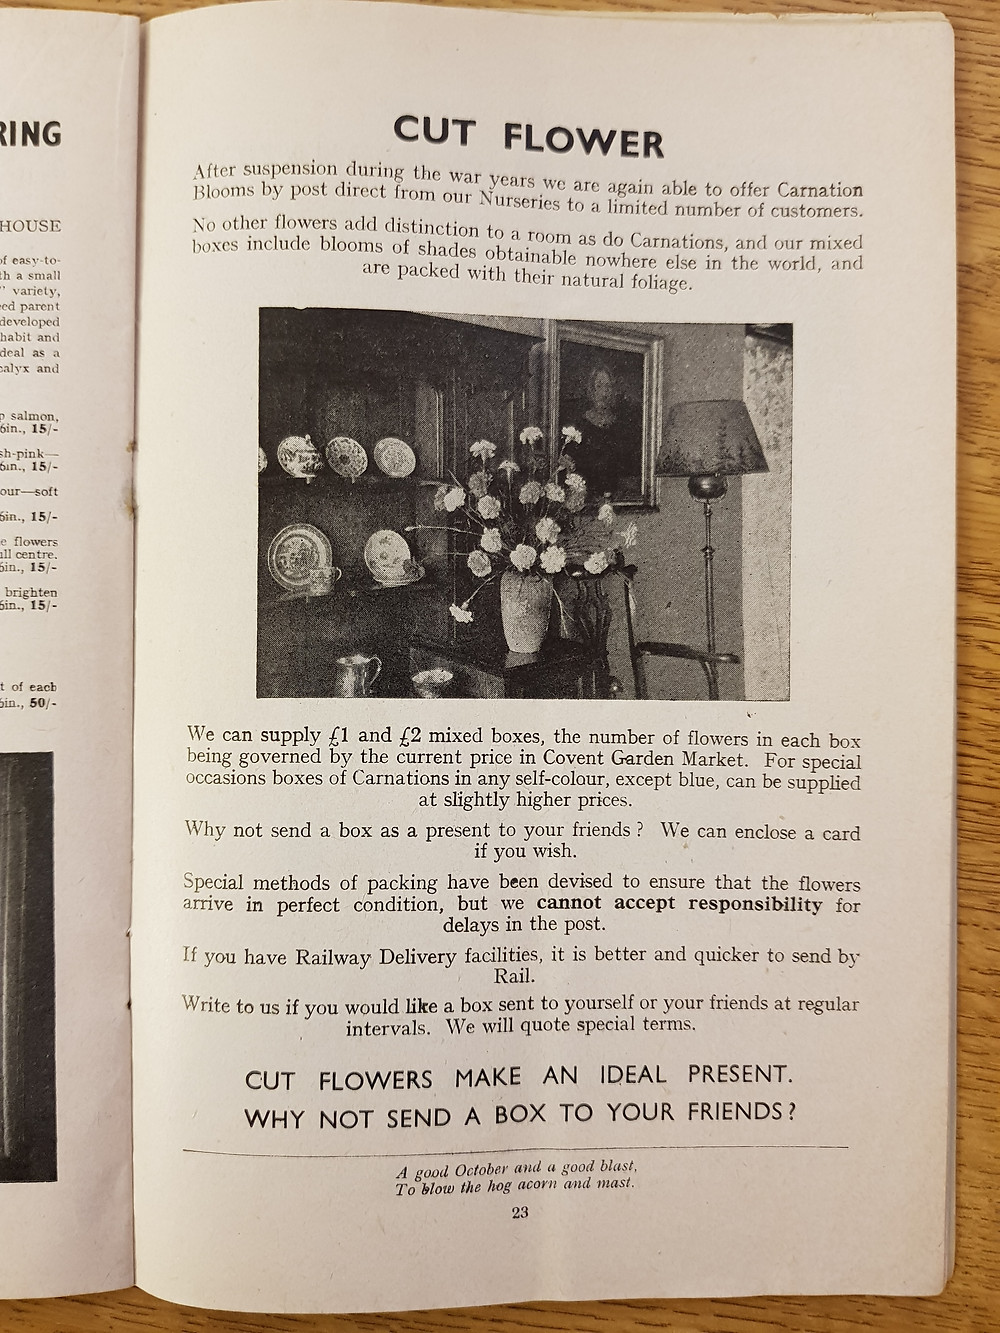 How they used to be sent, an excerpt from the 1950s mail order catalogue